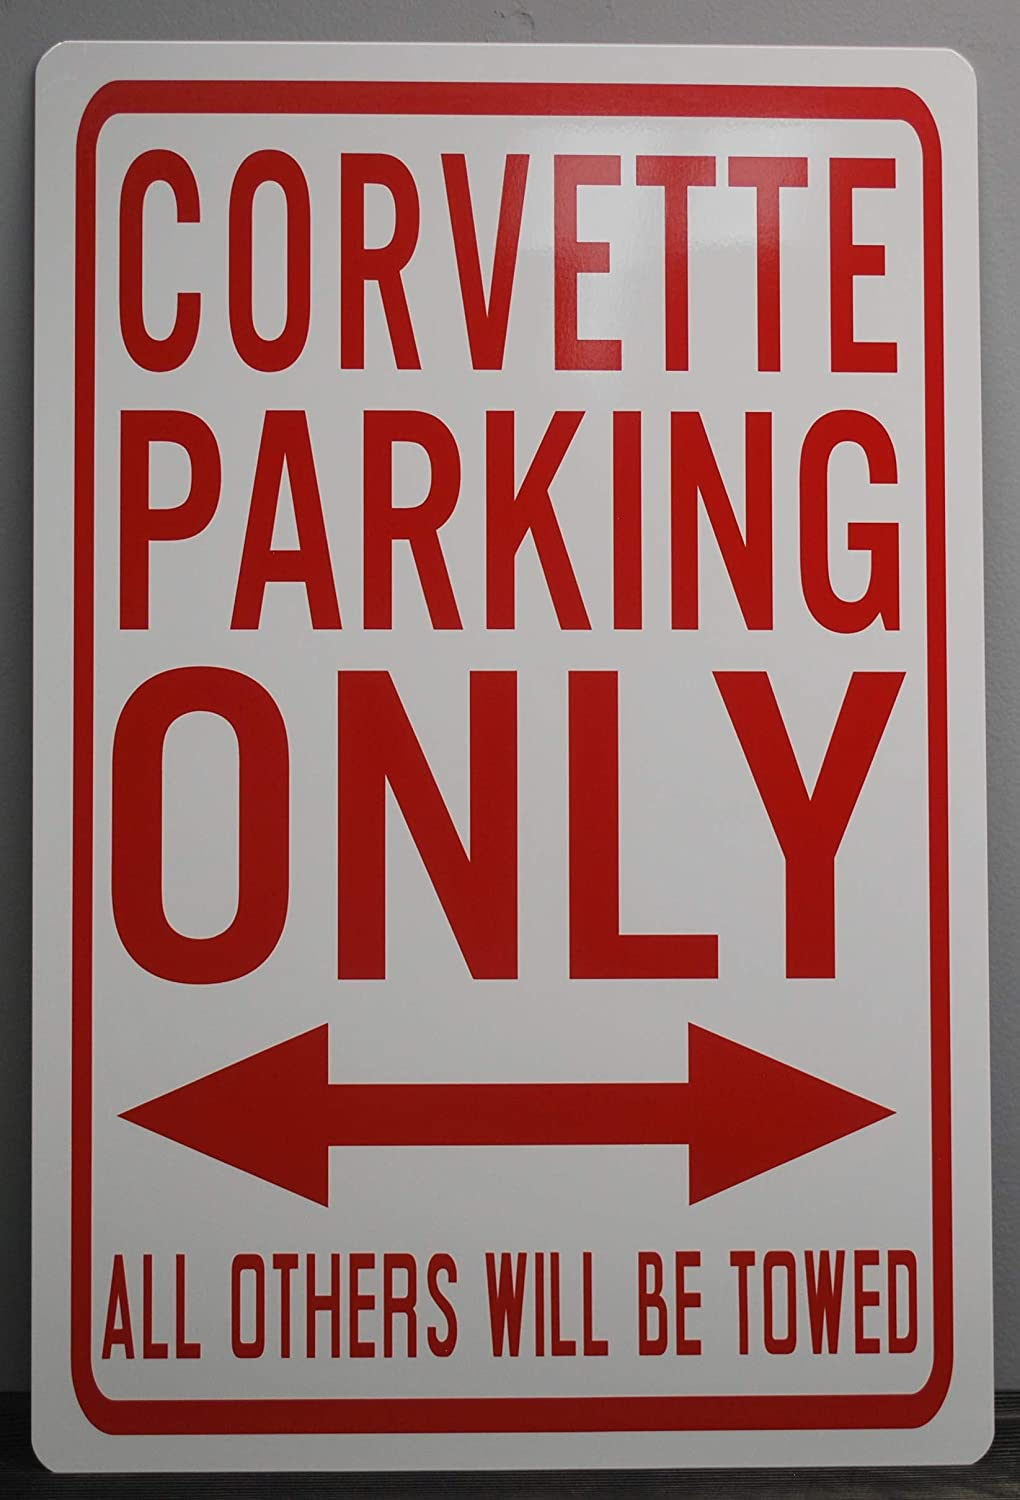 Motown Automotive Design Metal Street Sign Corvette Parking ONLY 12 X 18 CAR HOT Rod Muscle CAR Wall Art Gift BAR Man CAVE Restaurant Shop Garage FITS Chevy Stingray Split Window Z06 327 427 Vette